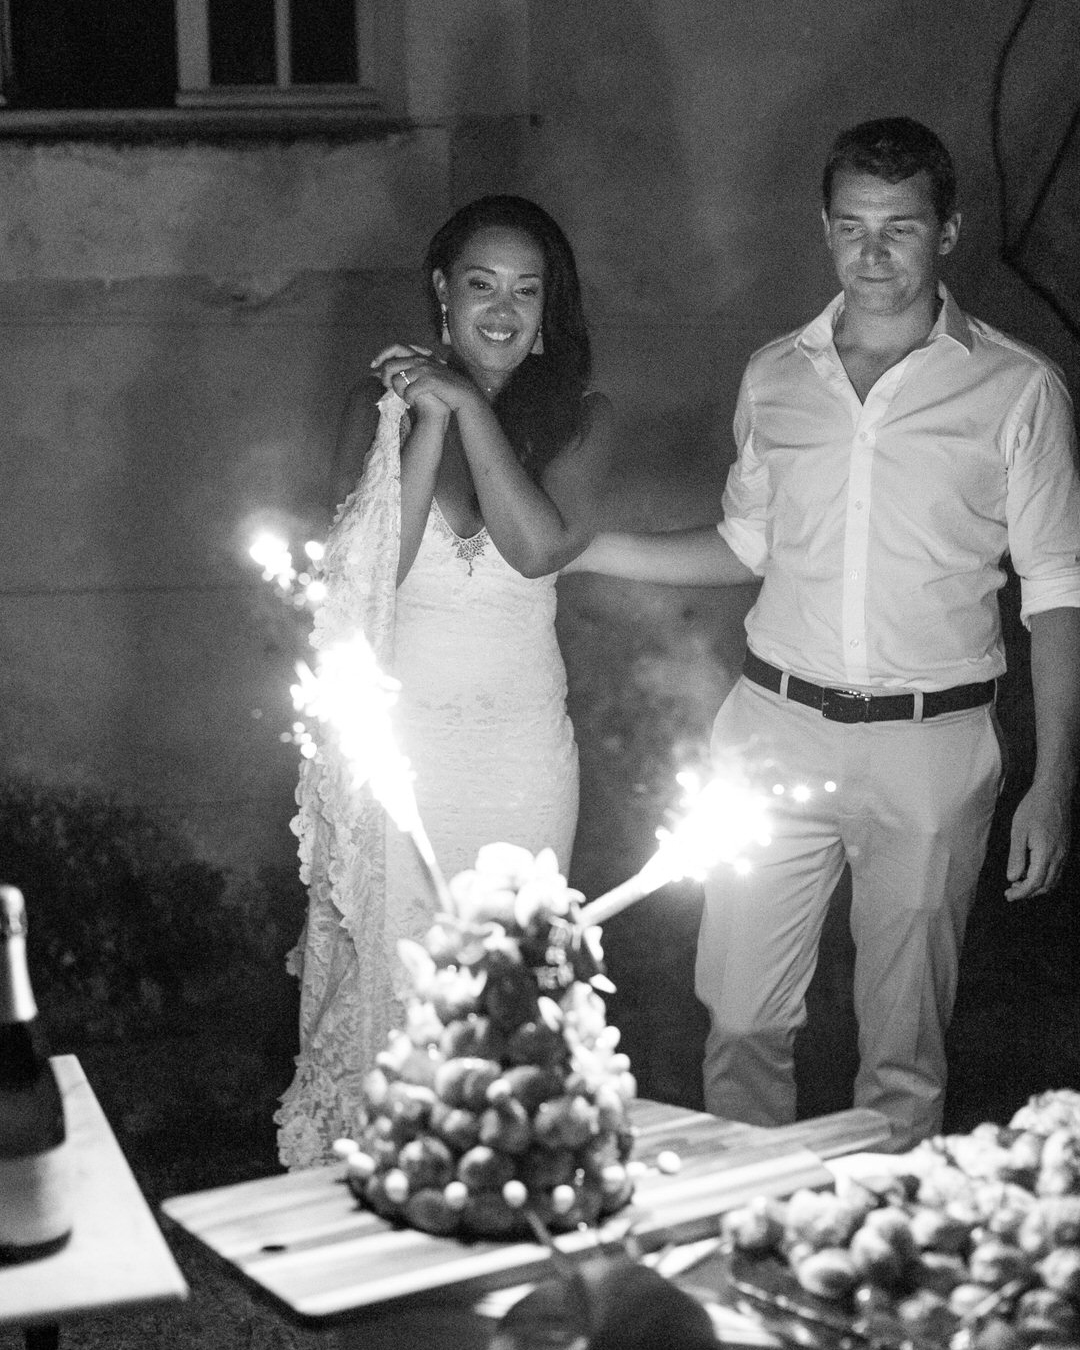 jen tim wedding croq with sparklers